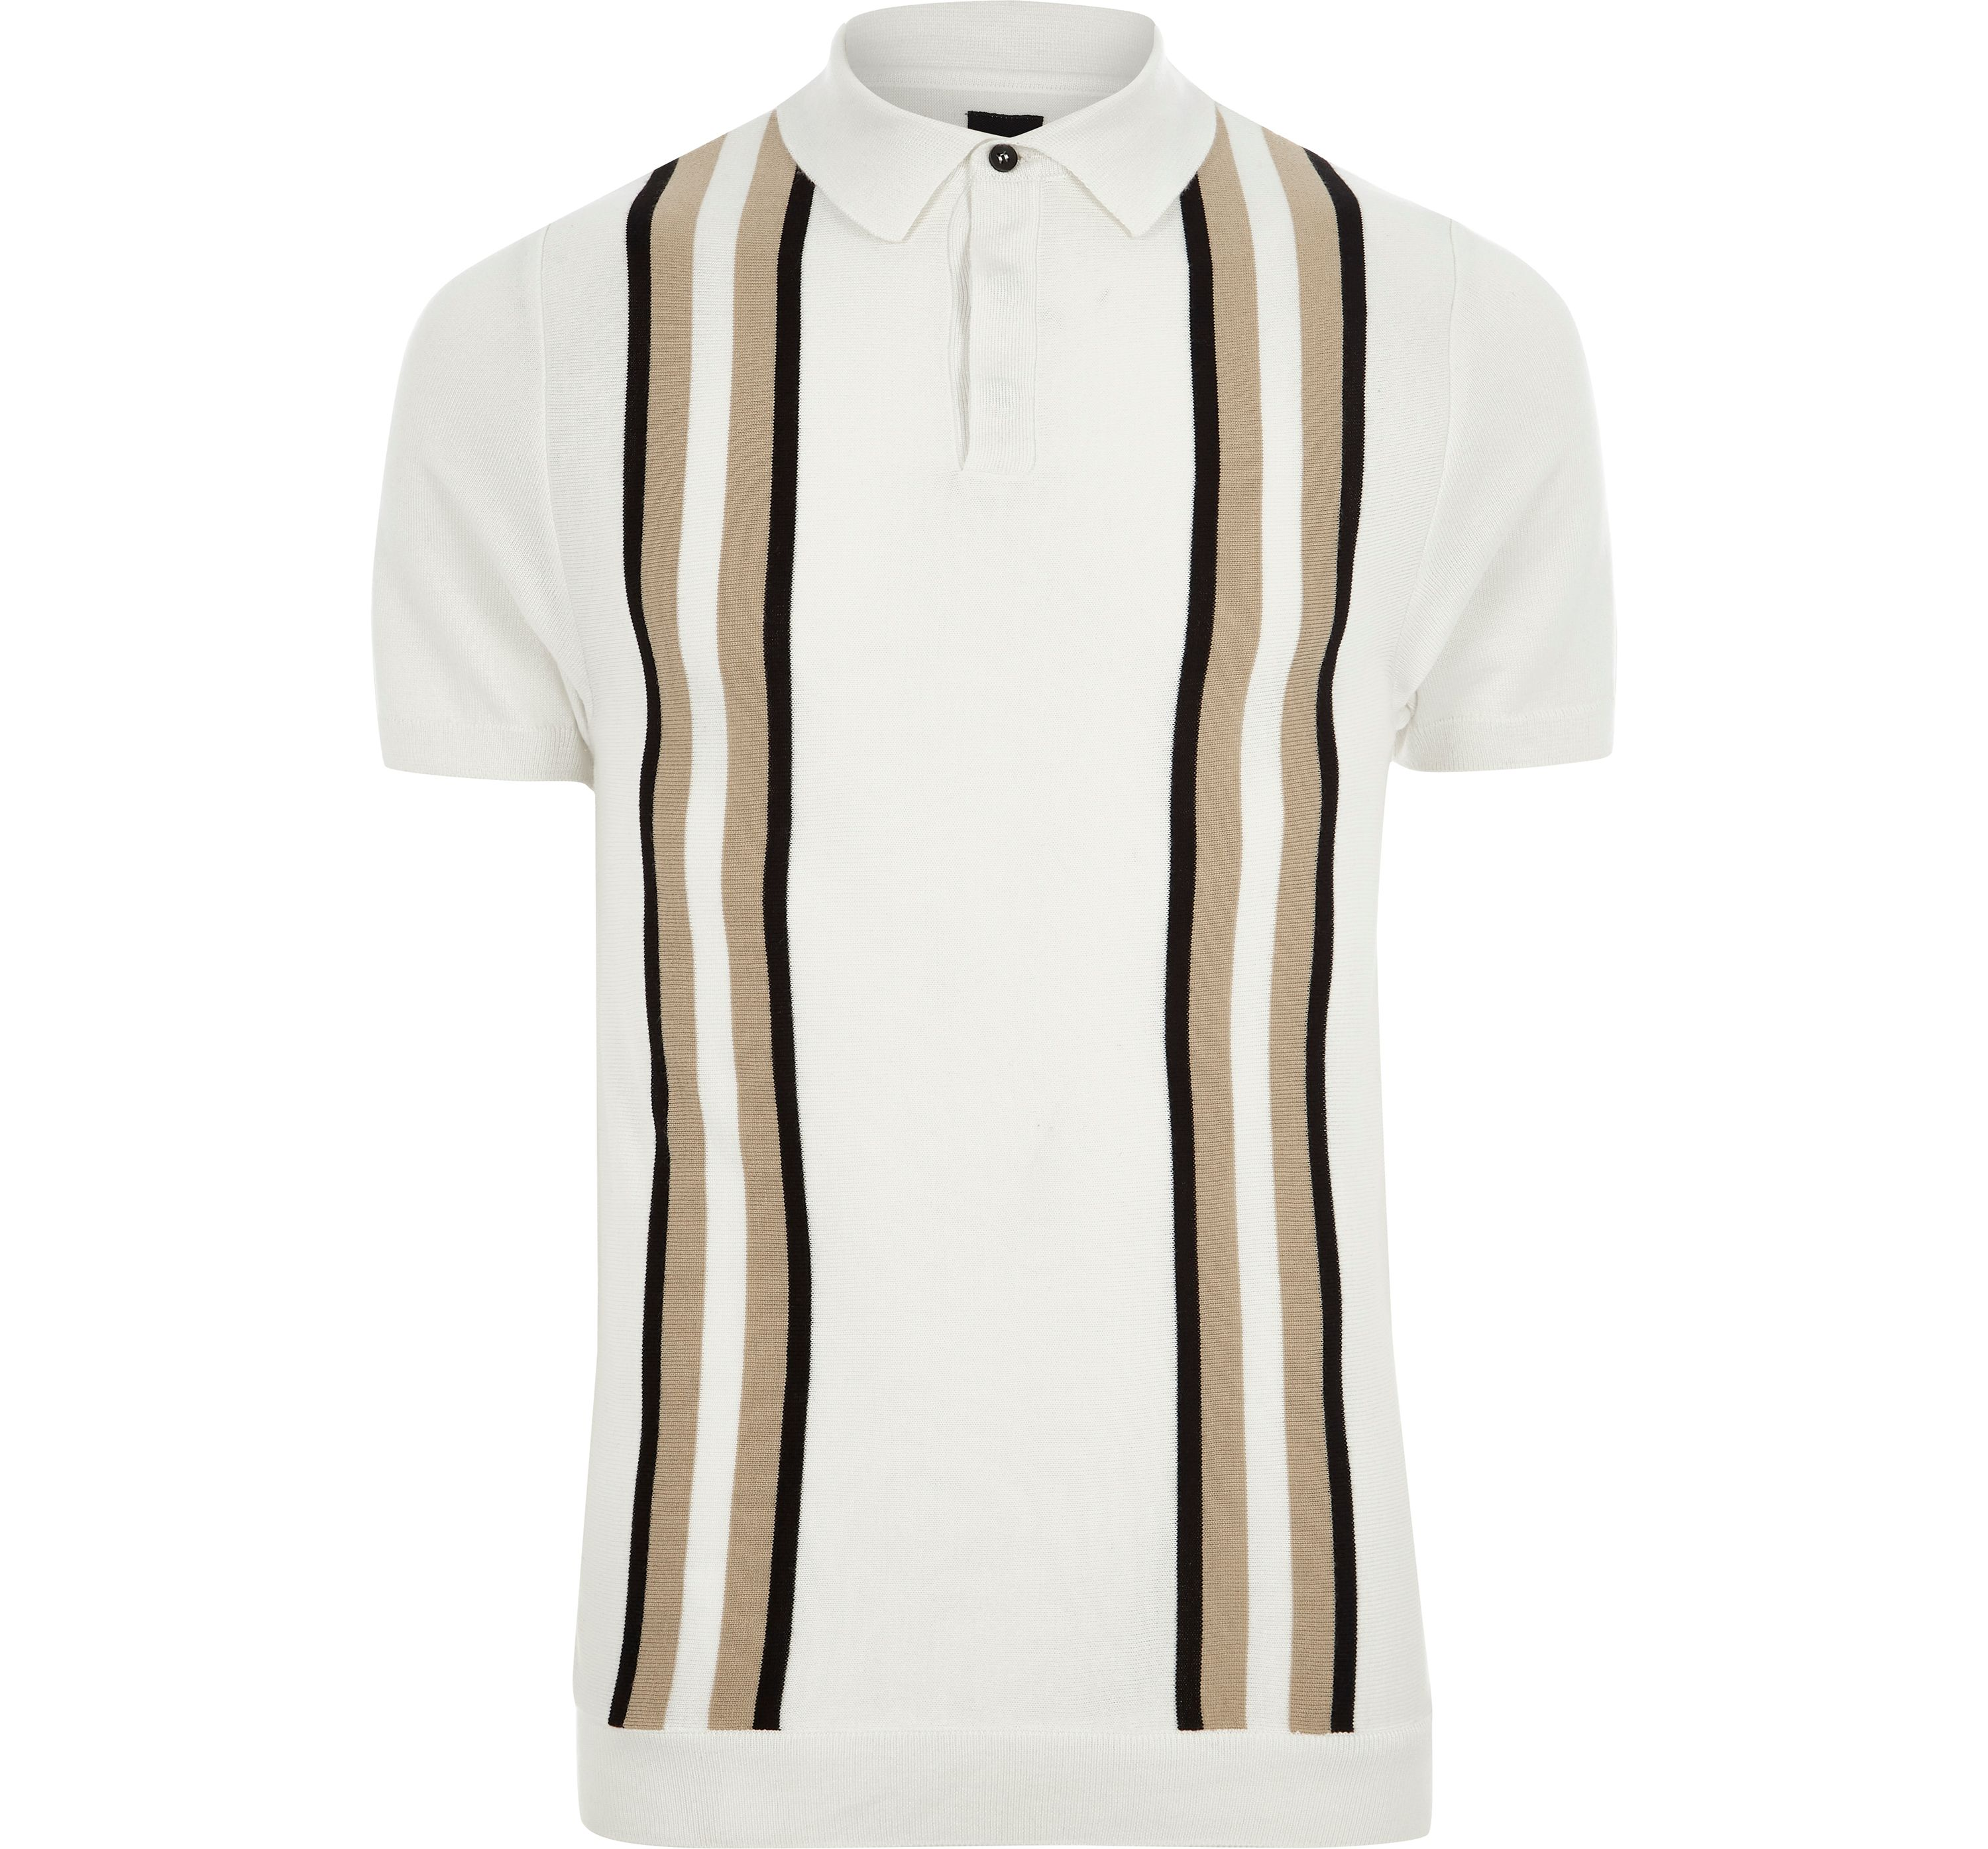 River Island Mens Cream block slim fit knitted polo shirt